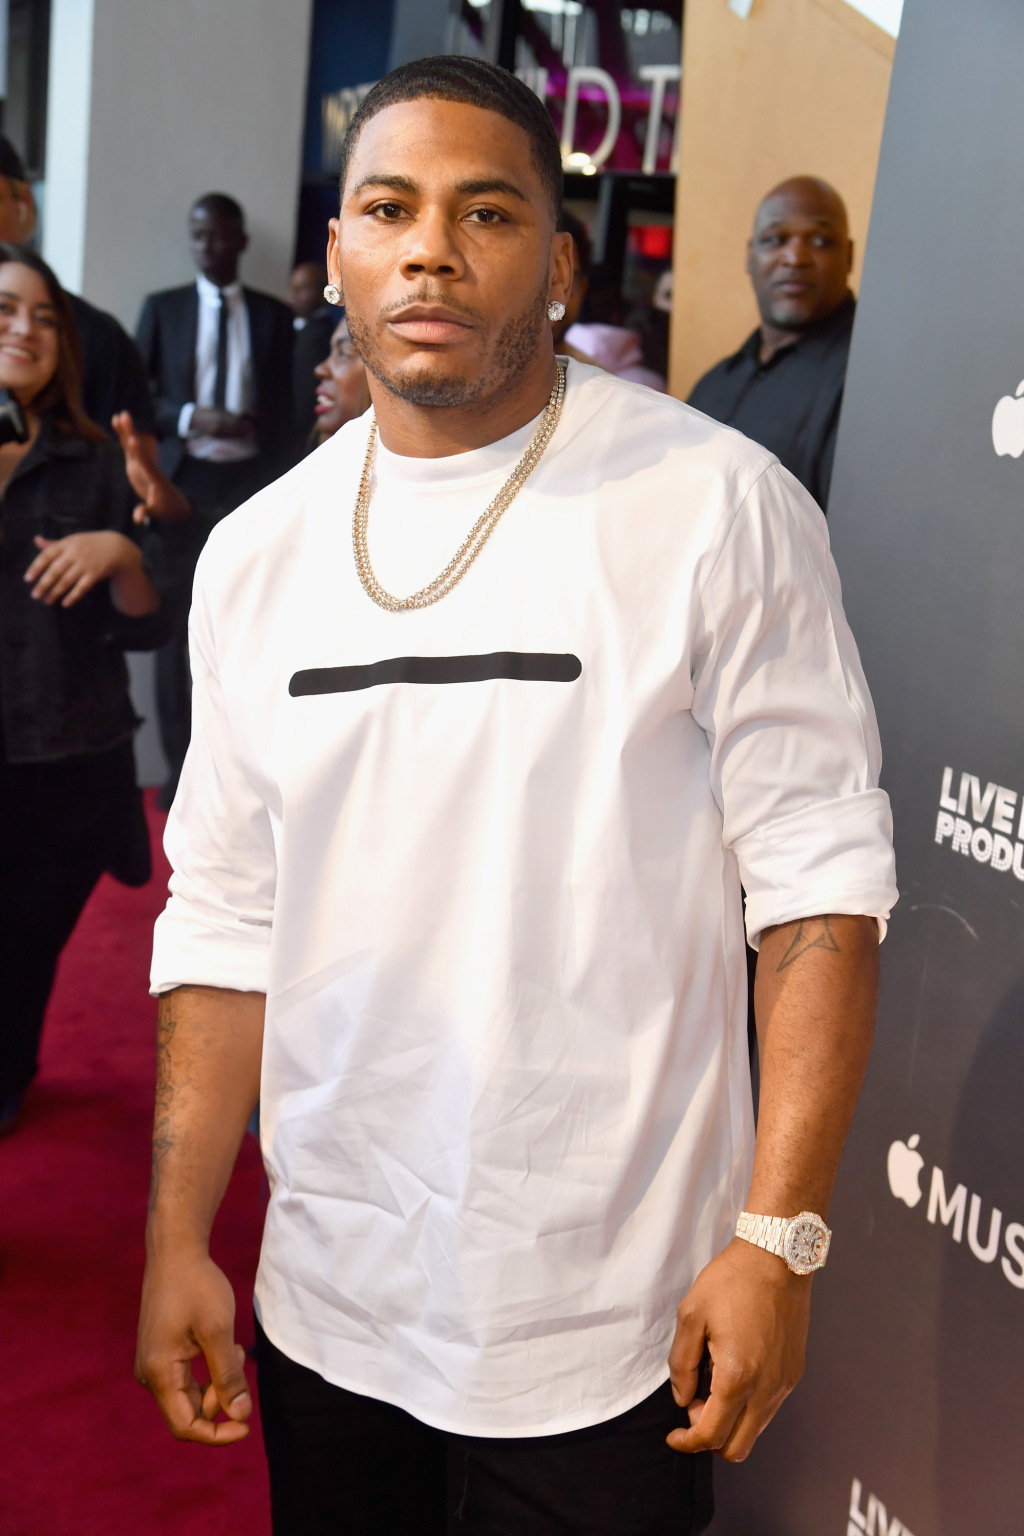 Nelly Is Free To Go After Prosecutors Drop His Rape Case